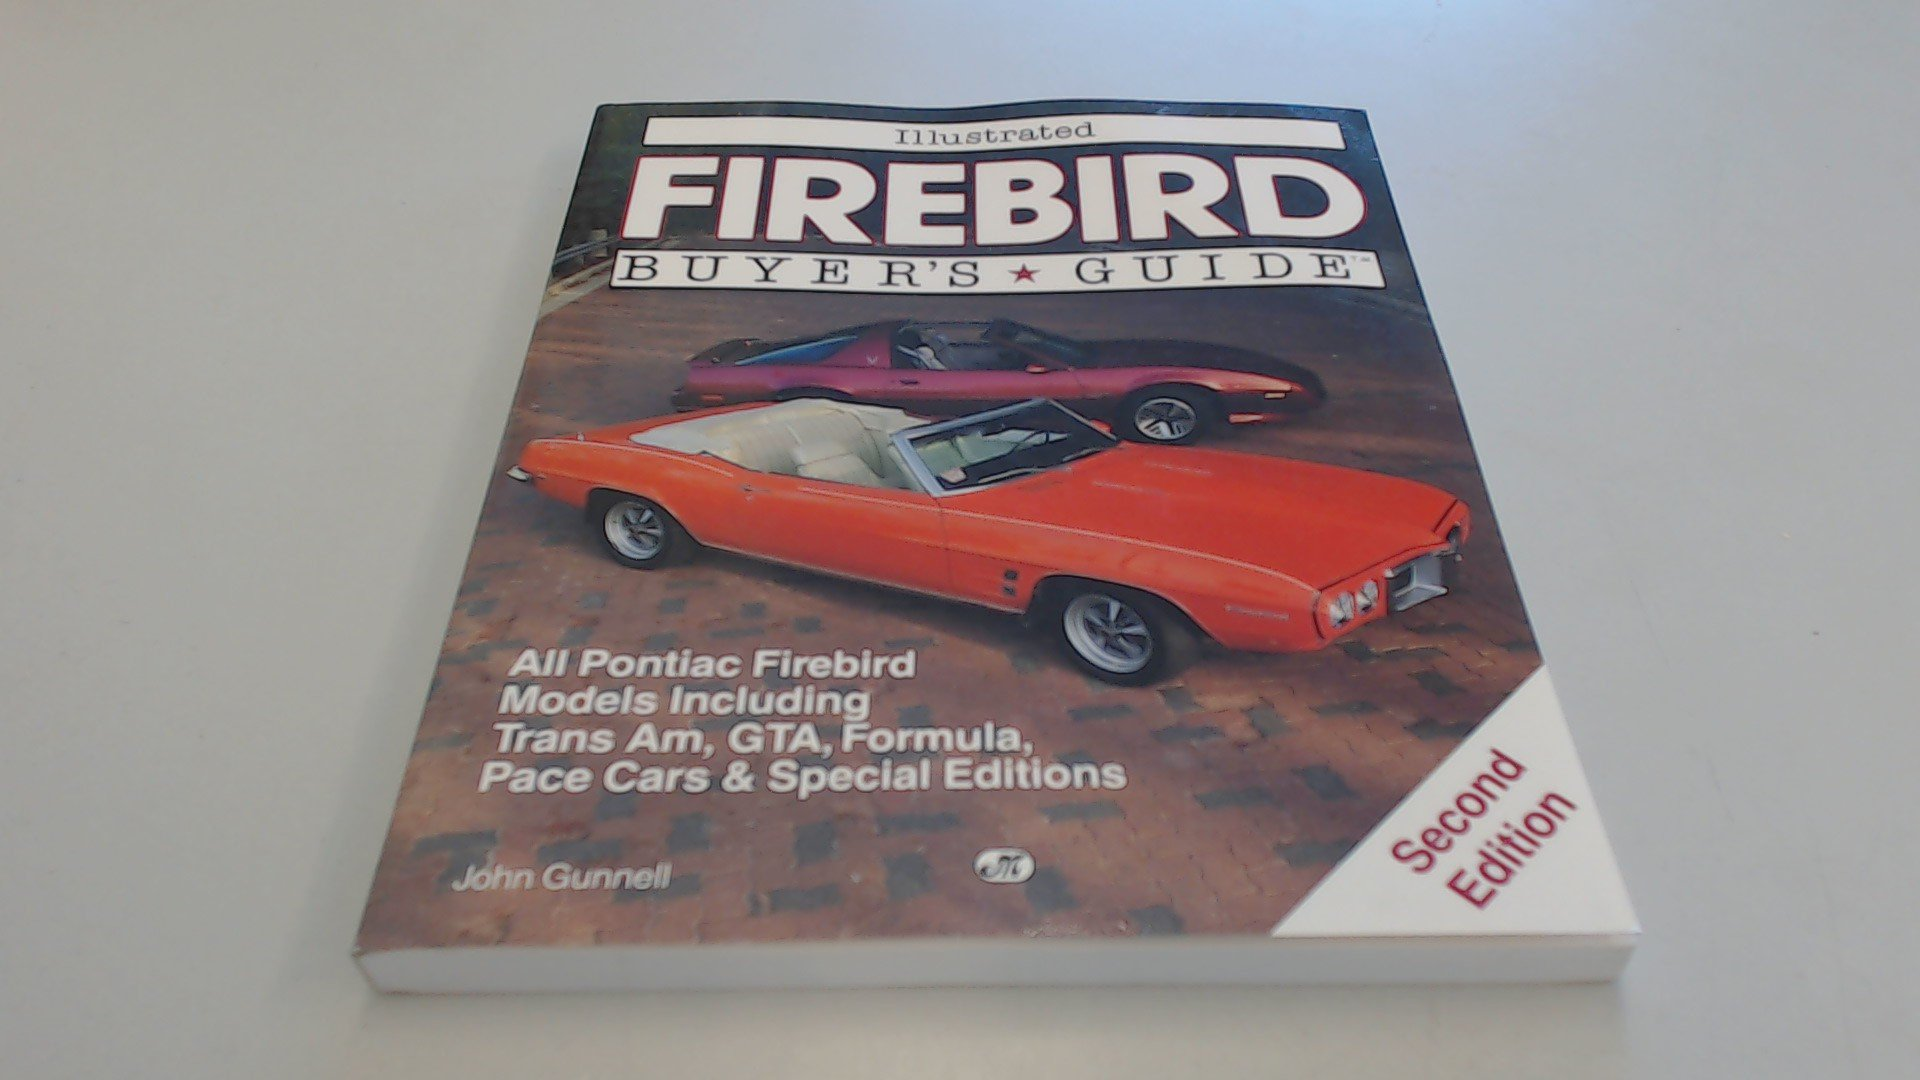 Illustrated Firebird Buyer's Guide: All Pontiac Firebird Models Including Trans Am, GTA, Formula, Pace Cars and Special Editions (Illustrated Buyer's Guide)